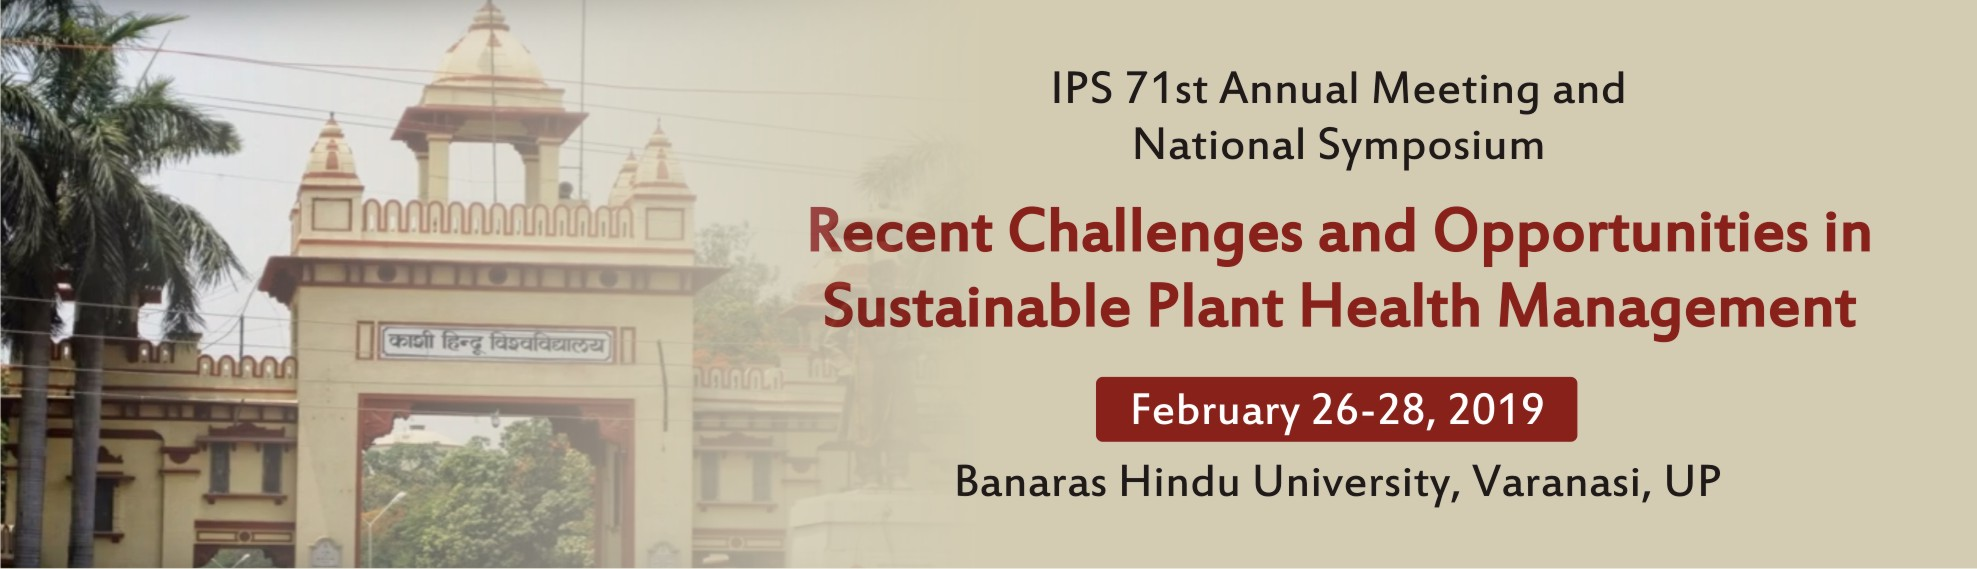 IPS 71st Annual Meeting and National Symposium at BHU, Varanasi, (UP), Feb. 26-28, 2019